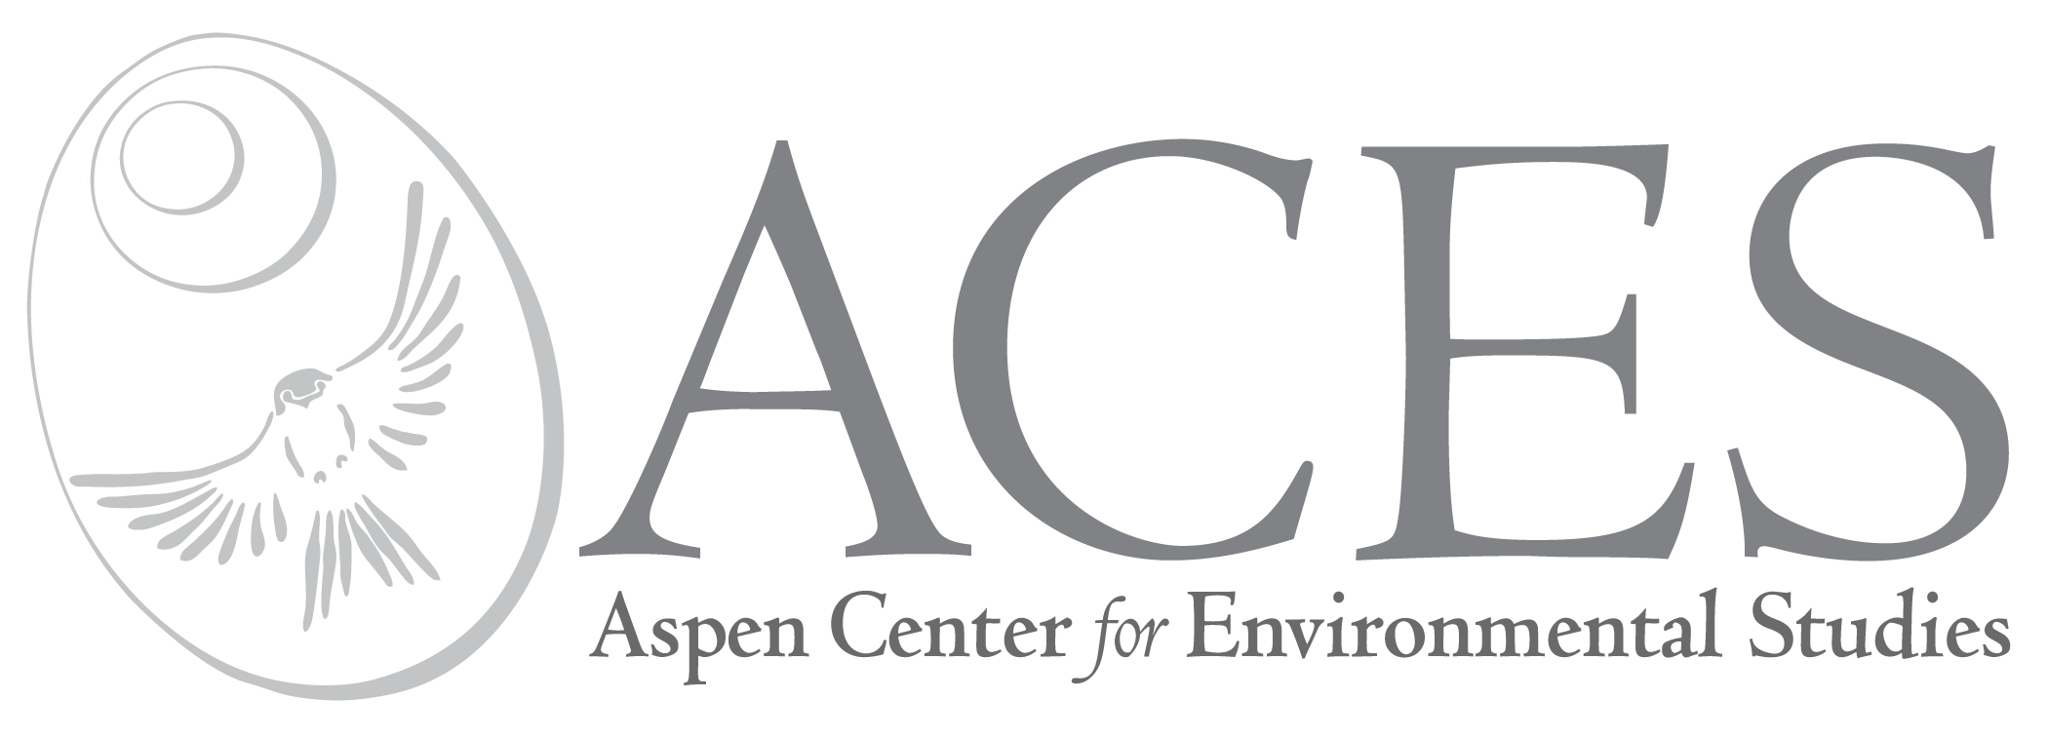 Aspen Center for Environmental Studies logo